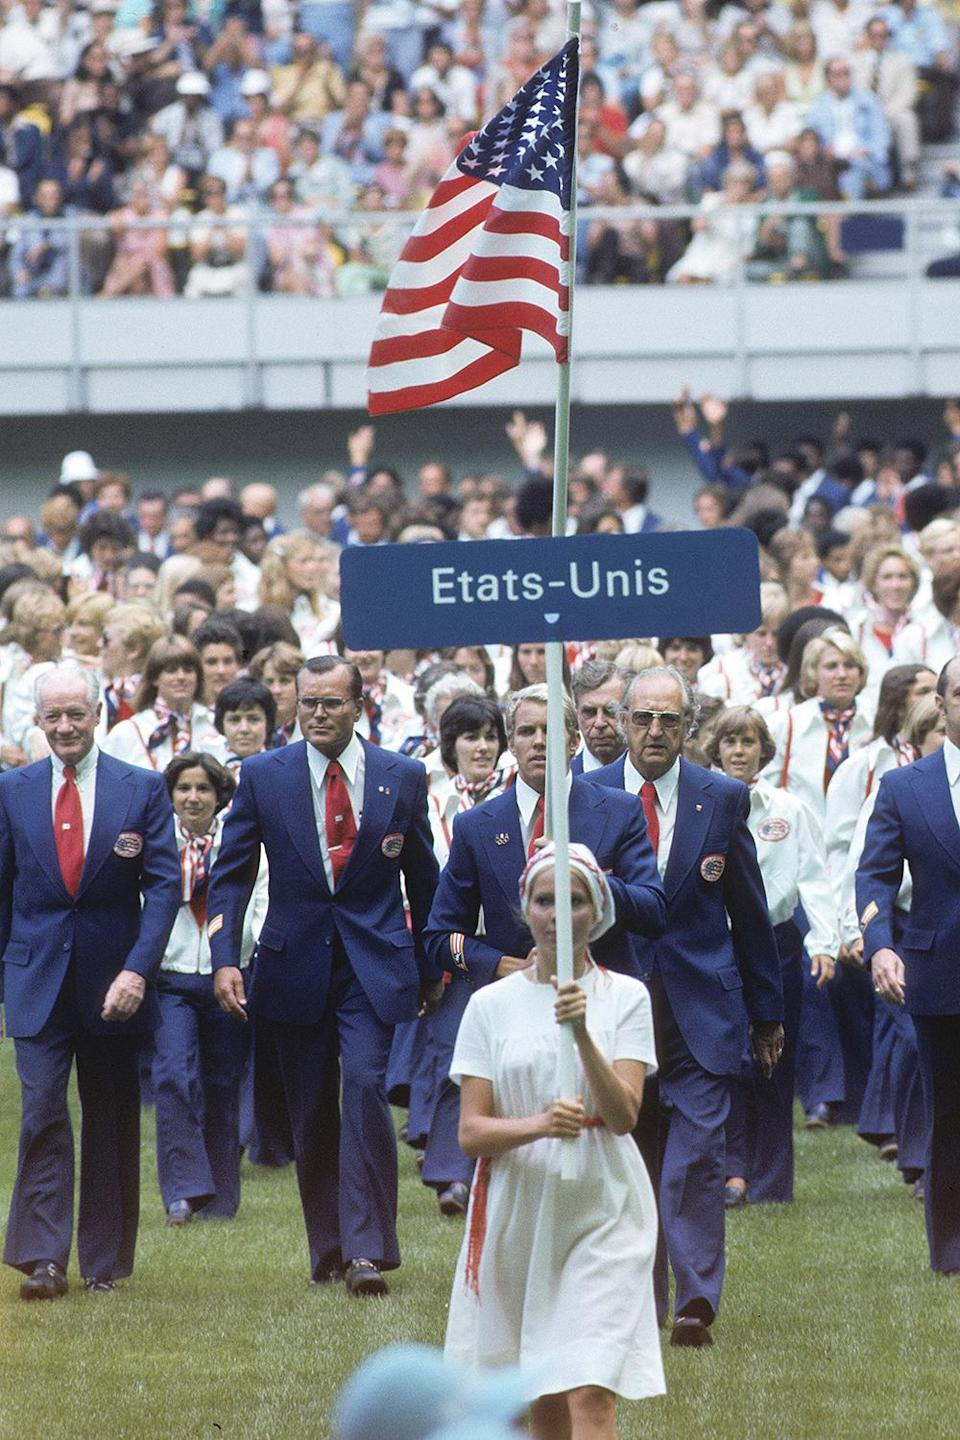 <p>In 1976, Halston — known for his disco-era looks — outfitted Team USA for the winter and summer Olympics. The sleek suits with wide-legged trousers made the Olympians look like they really meant business. And Halston also designed women's white zip-up jackets with an oh-so-'70s collar and red, white and blue neck scarf. </p>